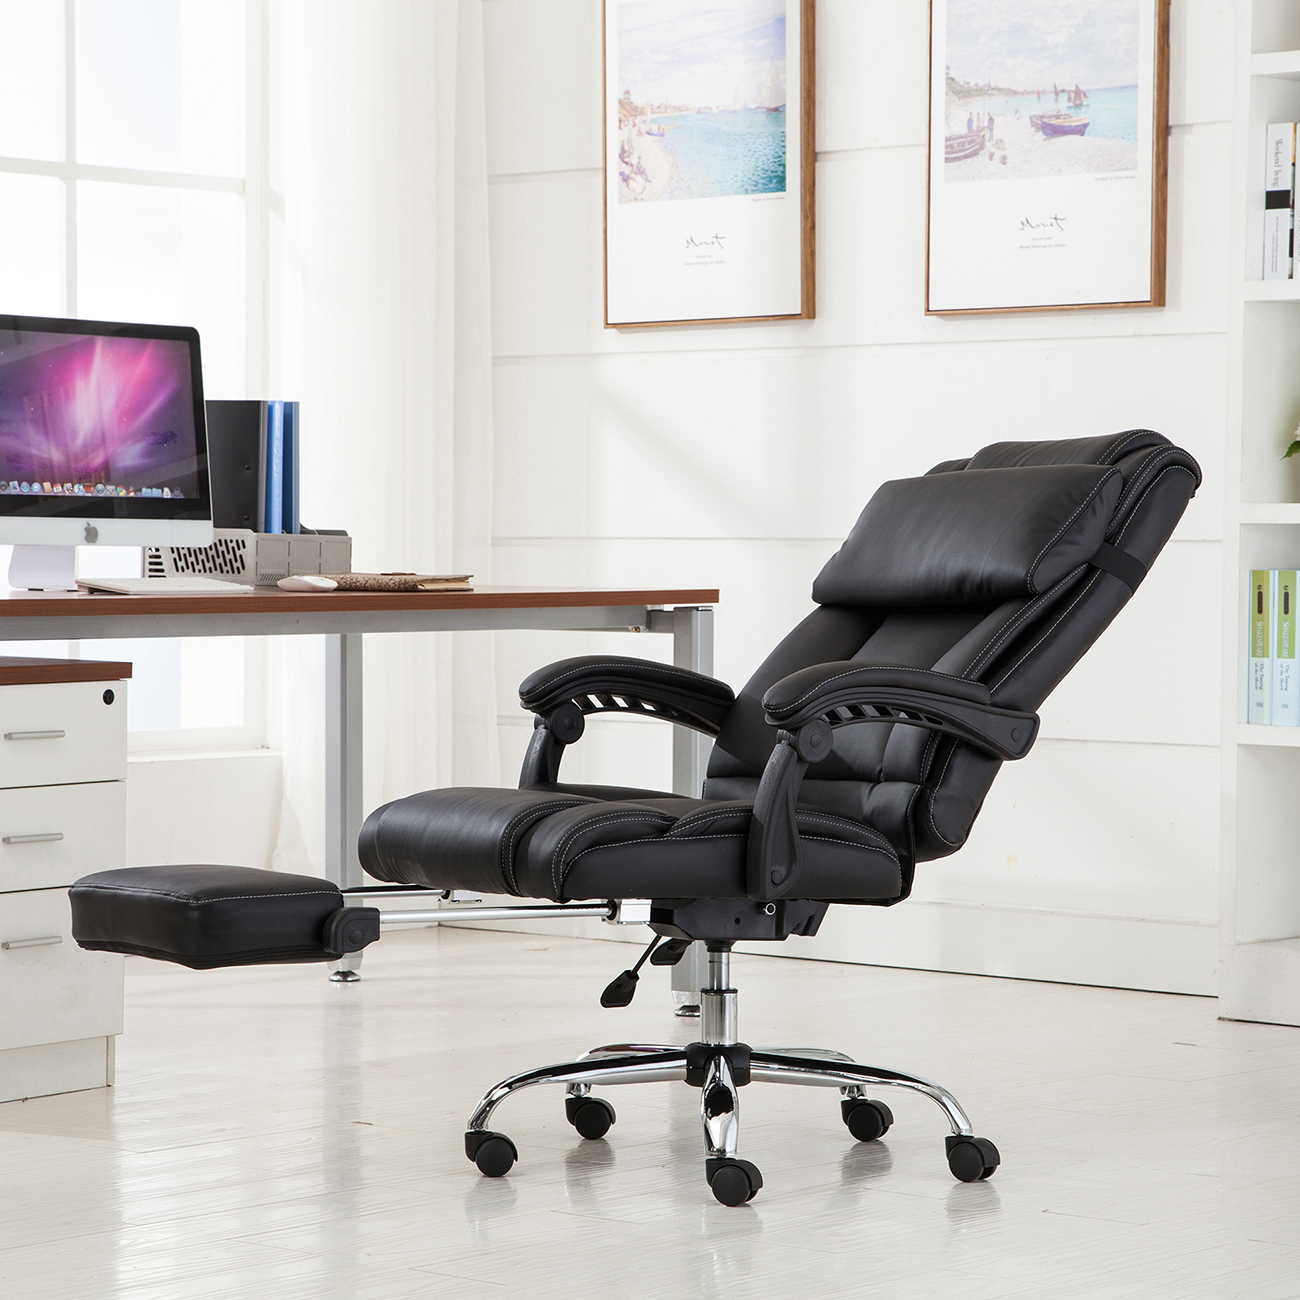 Belleze Executive Reclining Office Chair High Back w/ Footrest Armchair Recline + Pillow -Black & Belleze Executive Reclining Office Chair High Back w/ Footrest ... islam-shia.org